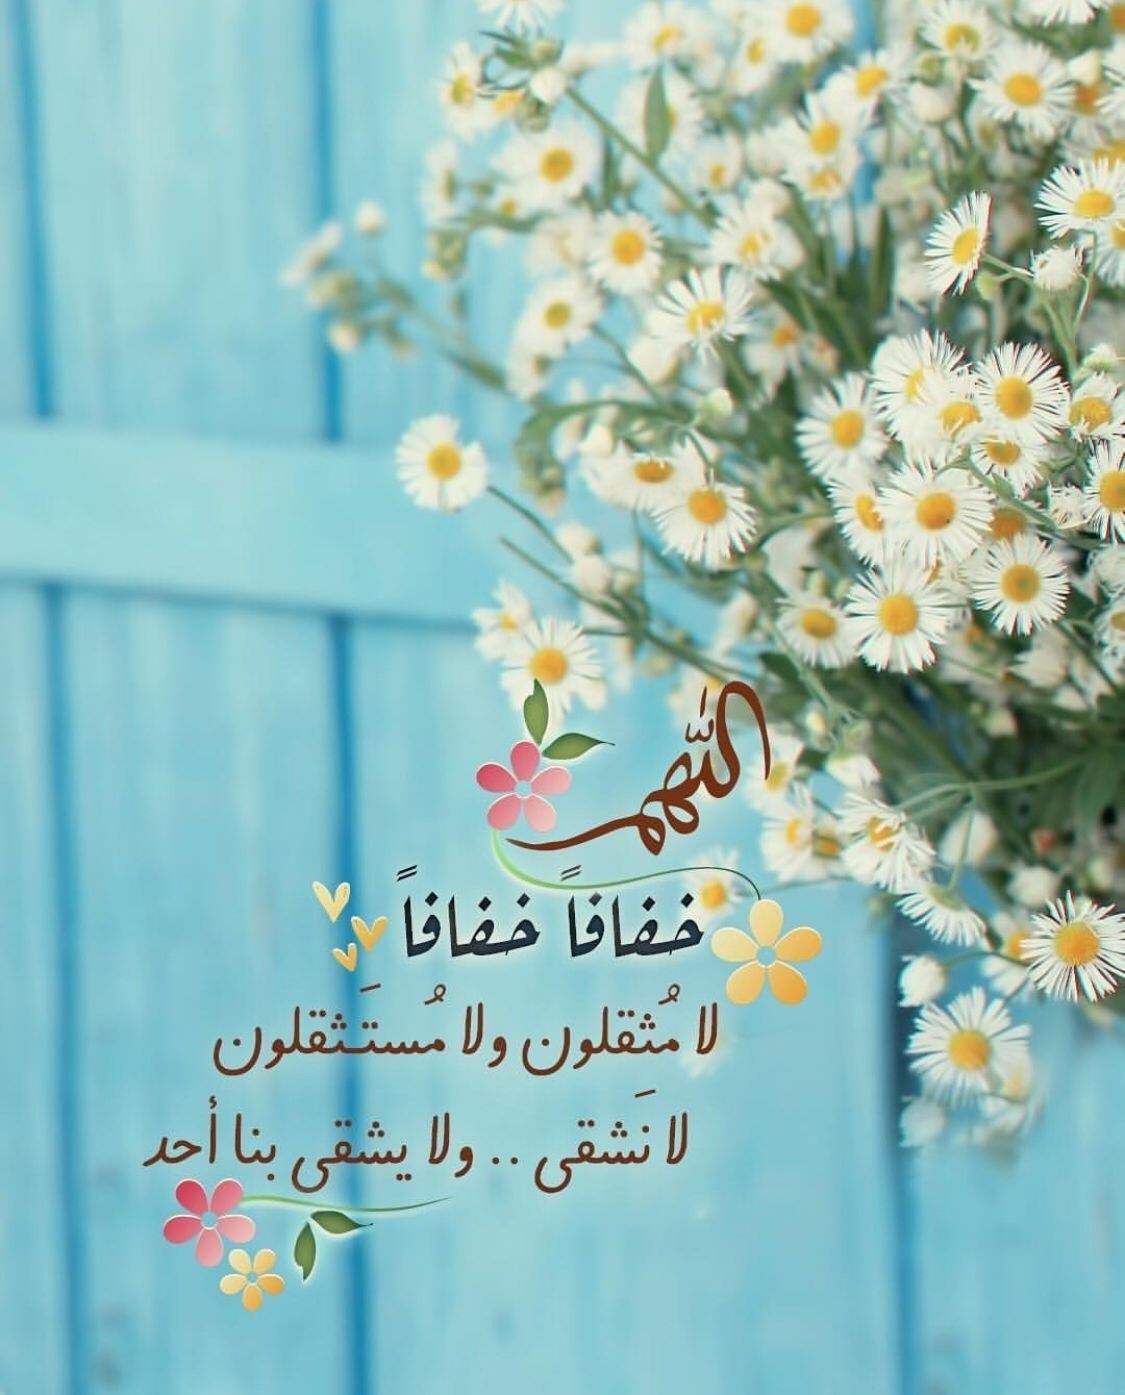 Pin by ام جود on دُعــــاء Quran quotes inspirational